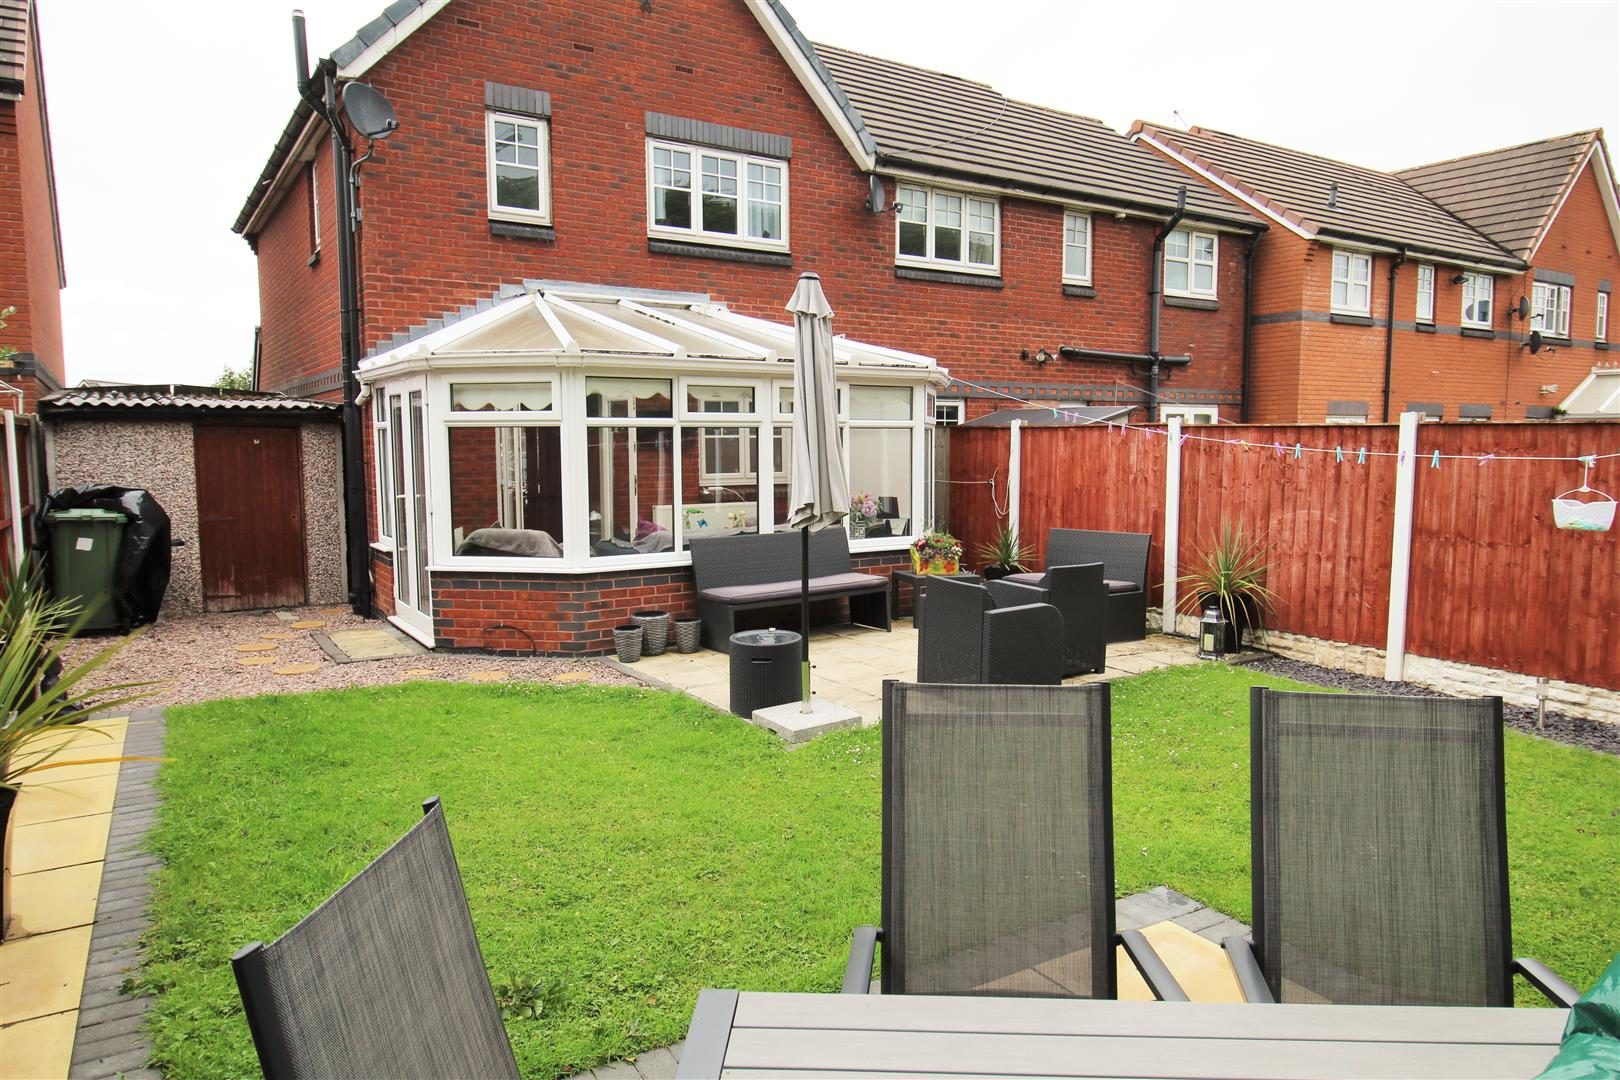 3 Bedrooms, House - Semi-Detached, Barberry Crescent, Bootle